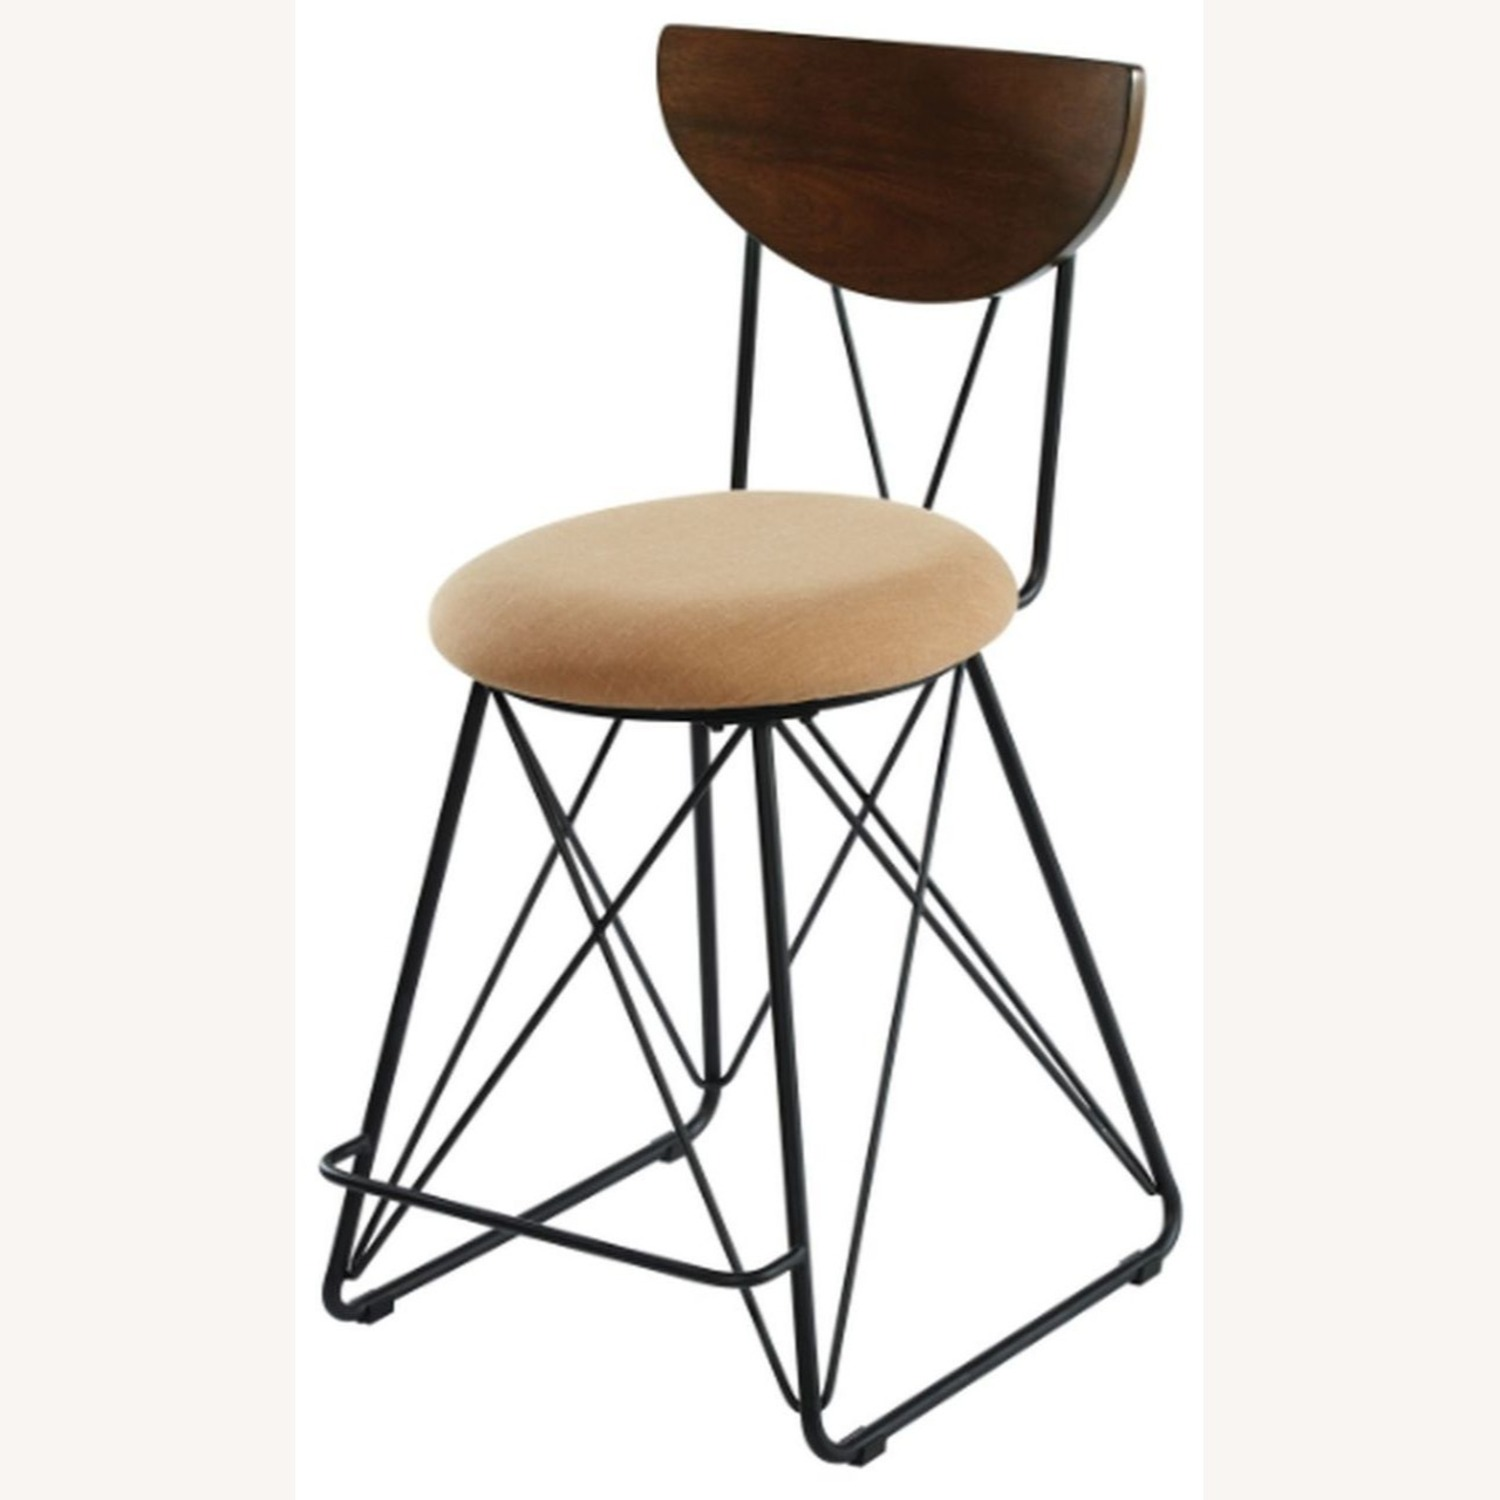 Modern Counter Height Stool In Gold Fabric - image-1